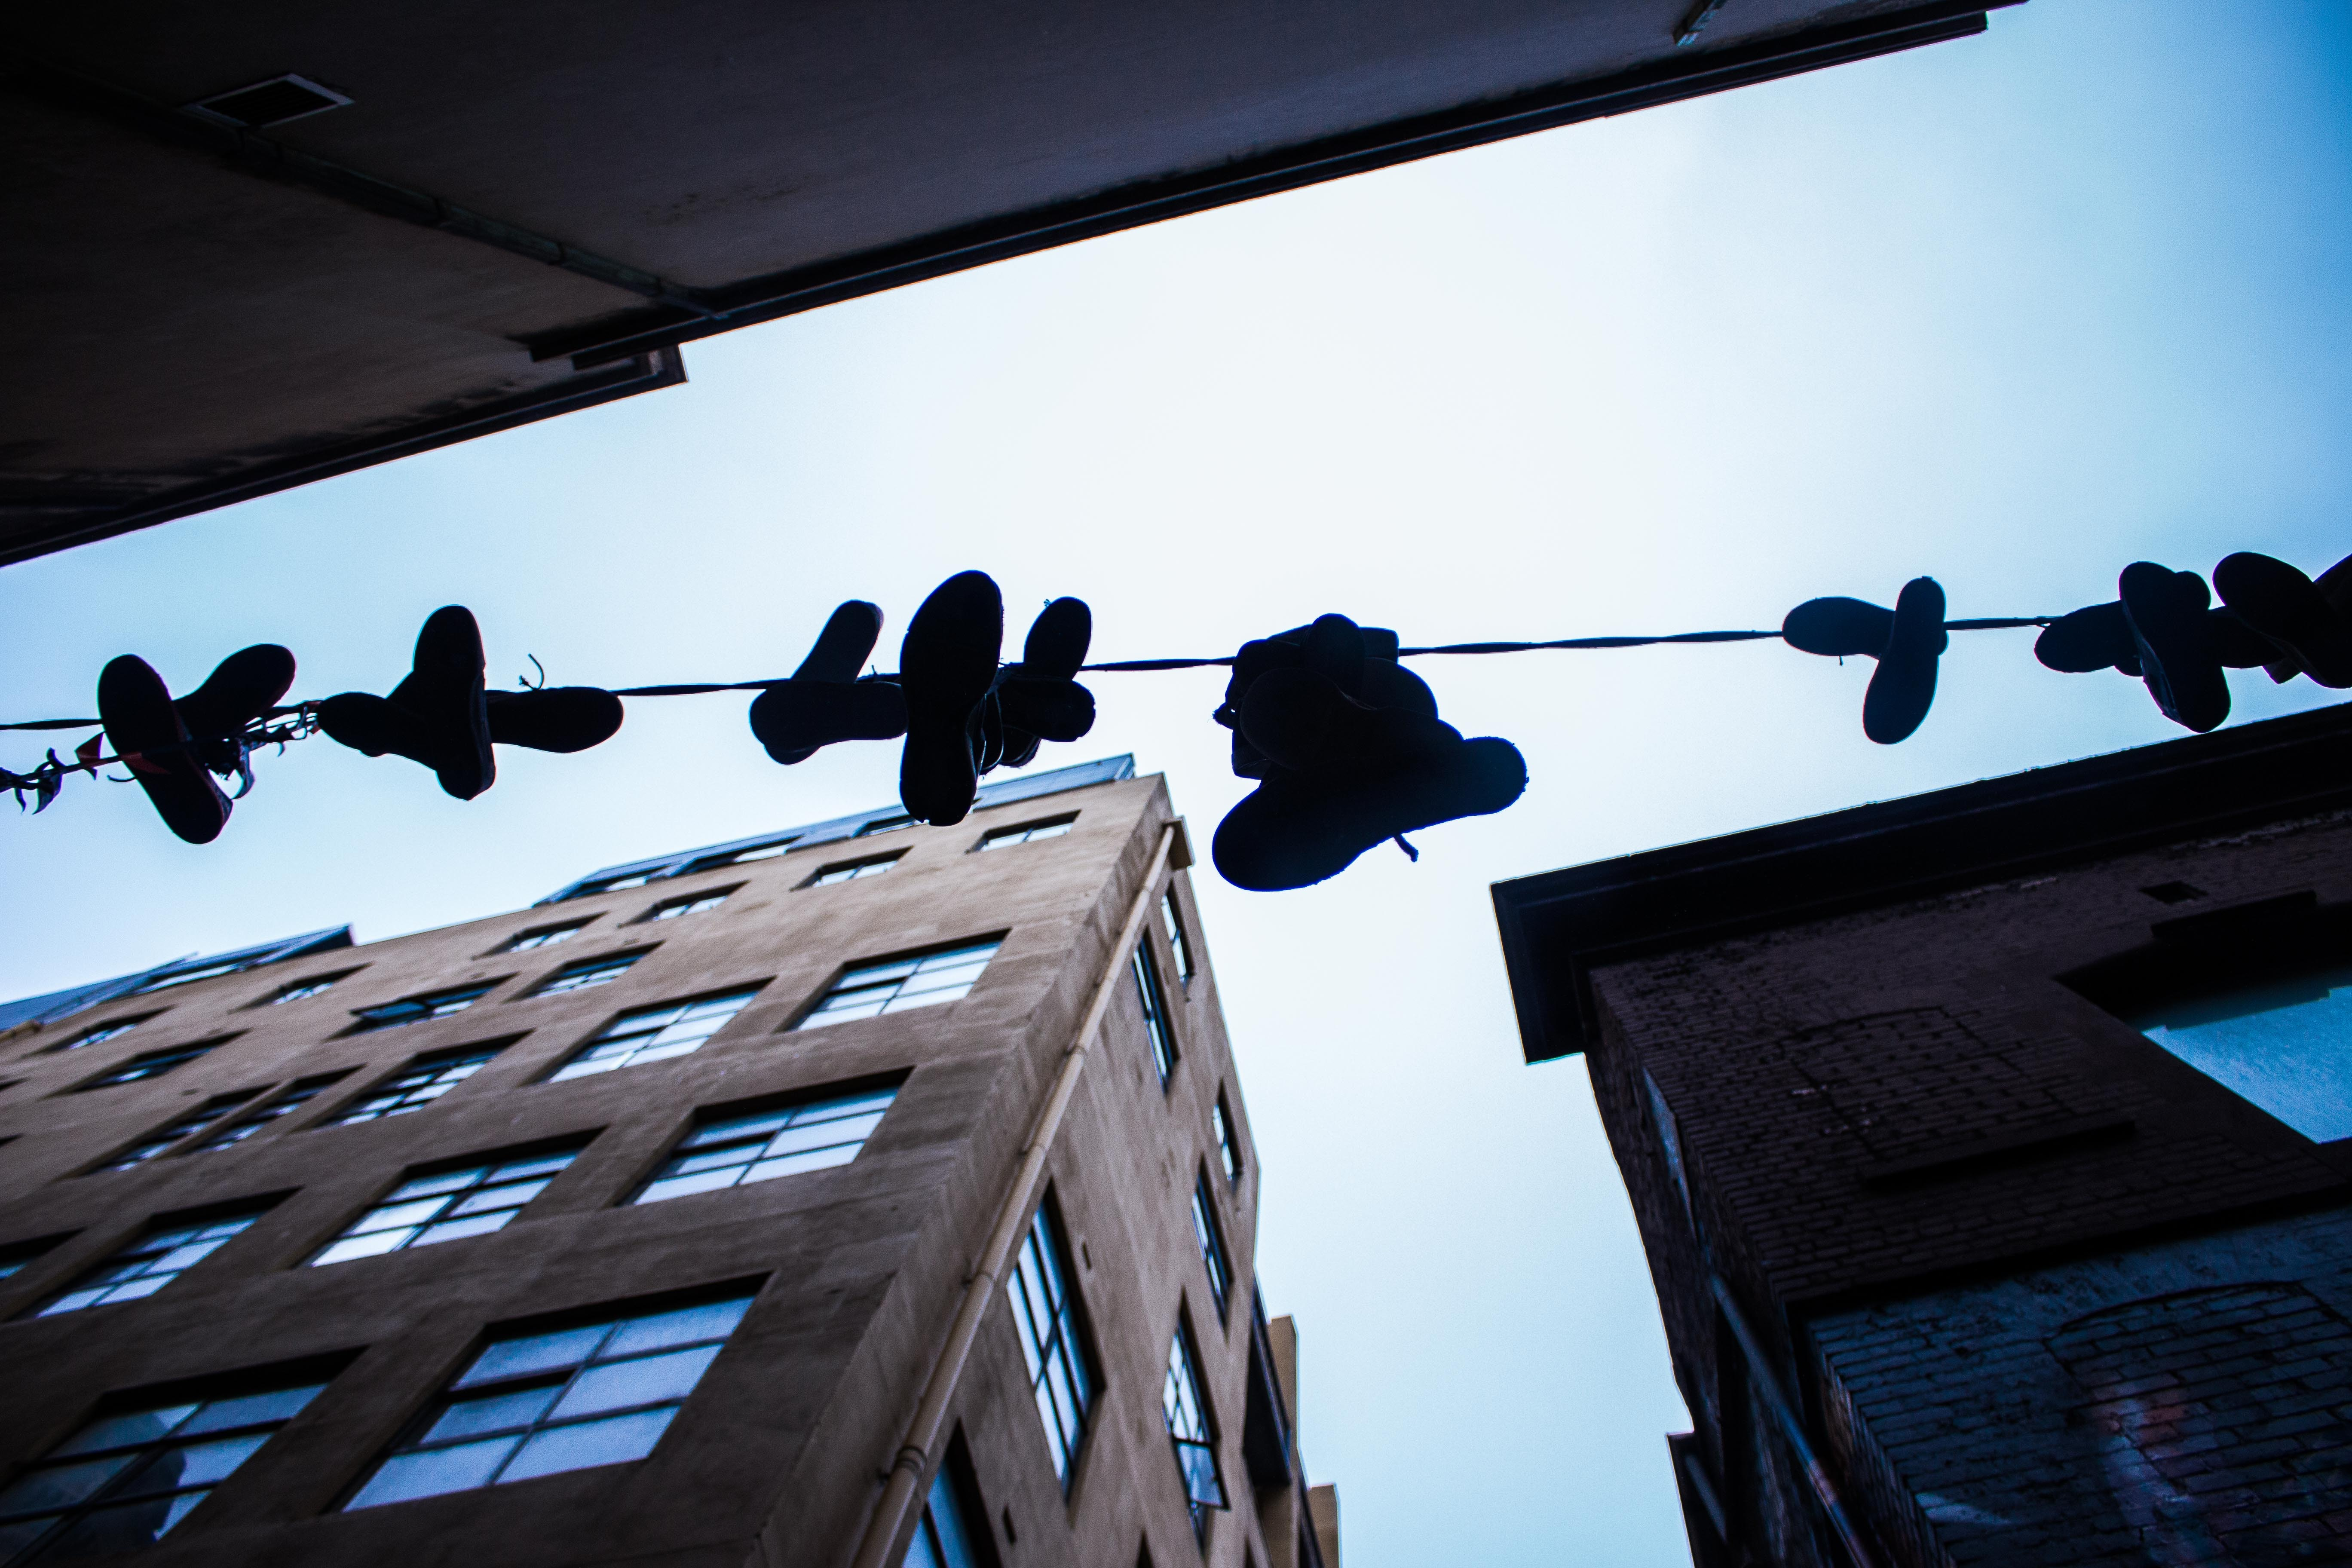 Sneakers hanging on a telephone line attached to a building on Hosier Lane